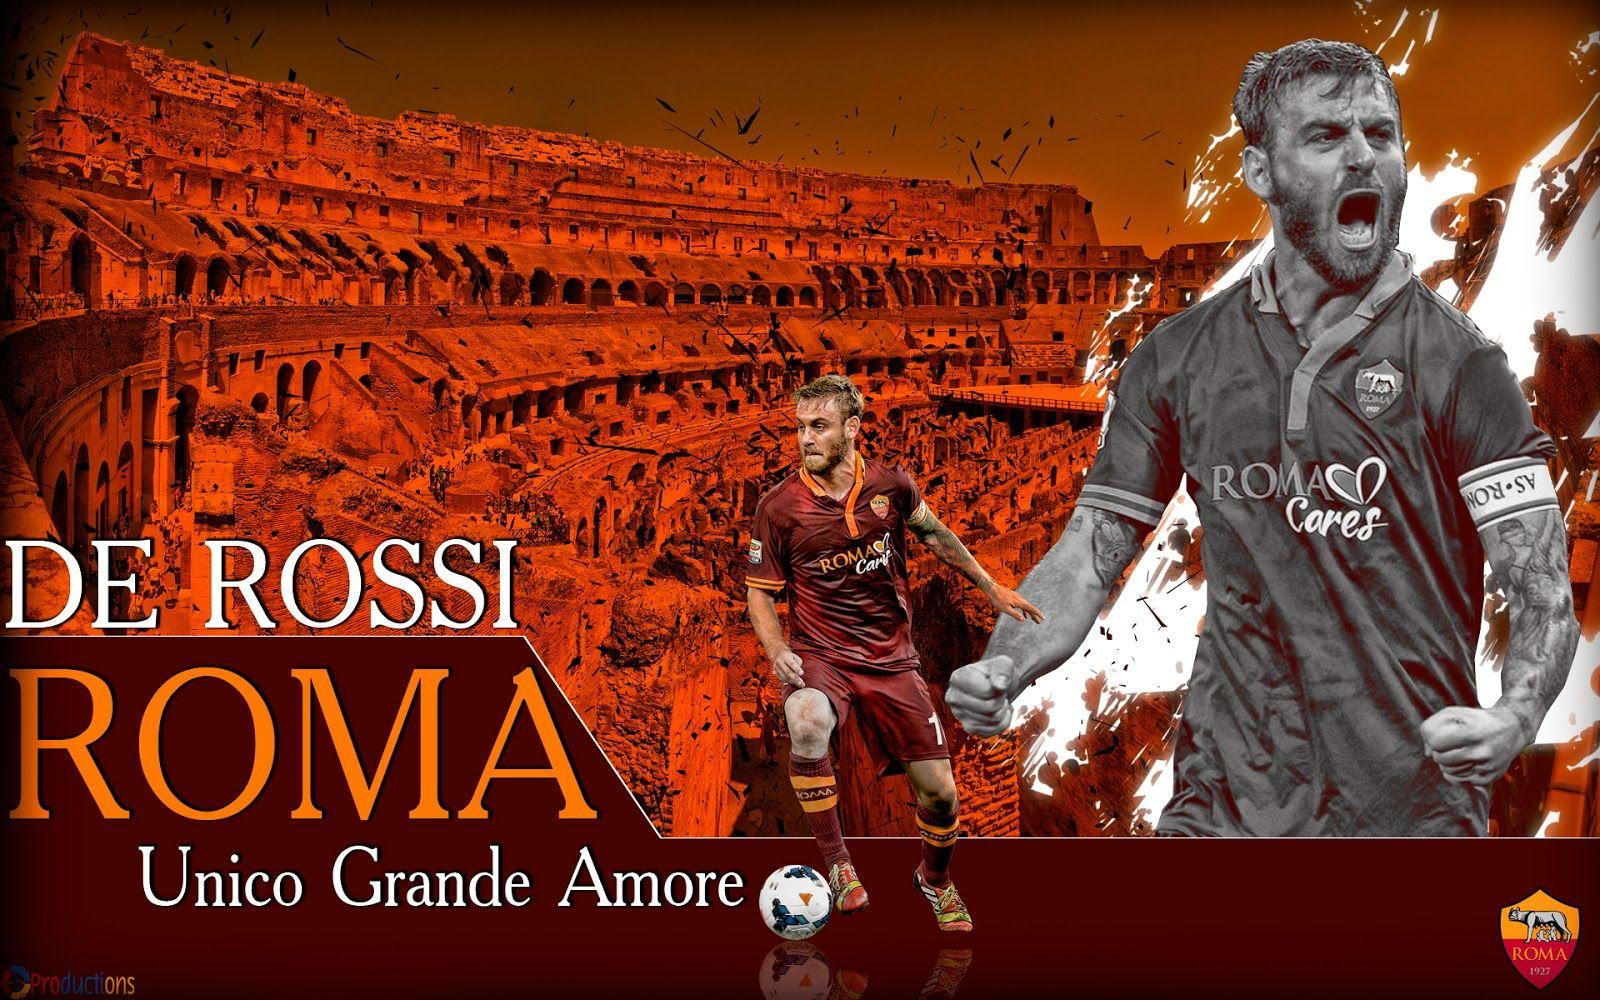 8 Productions: De Rossi Roma wallpapers 2013/14